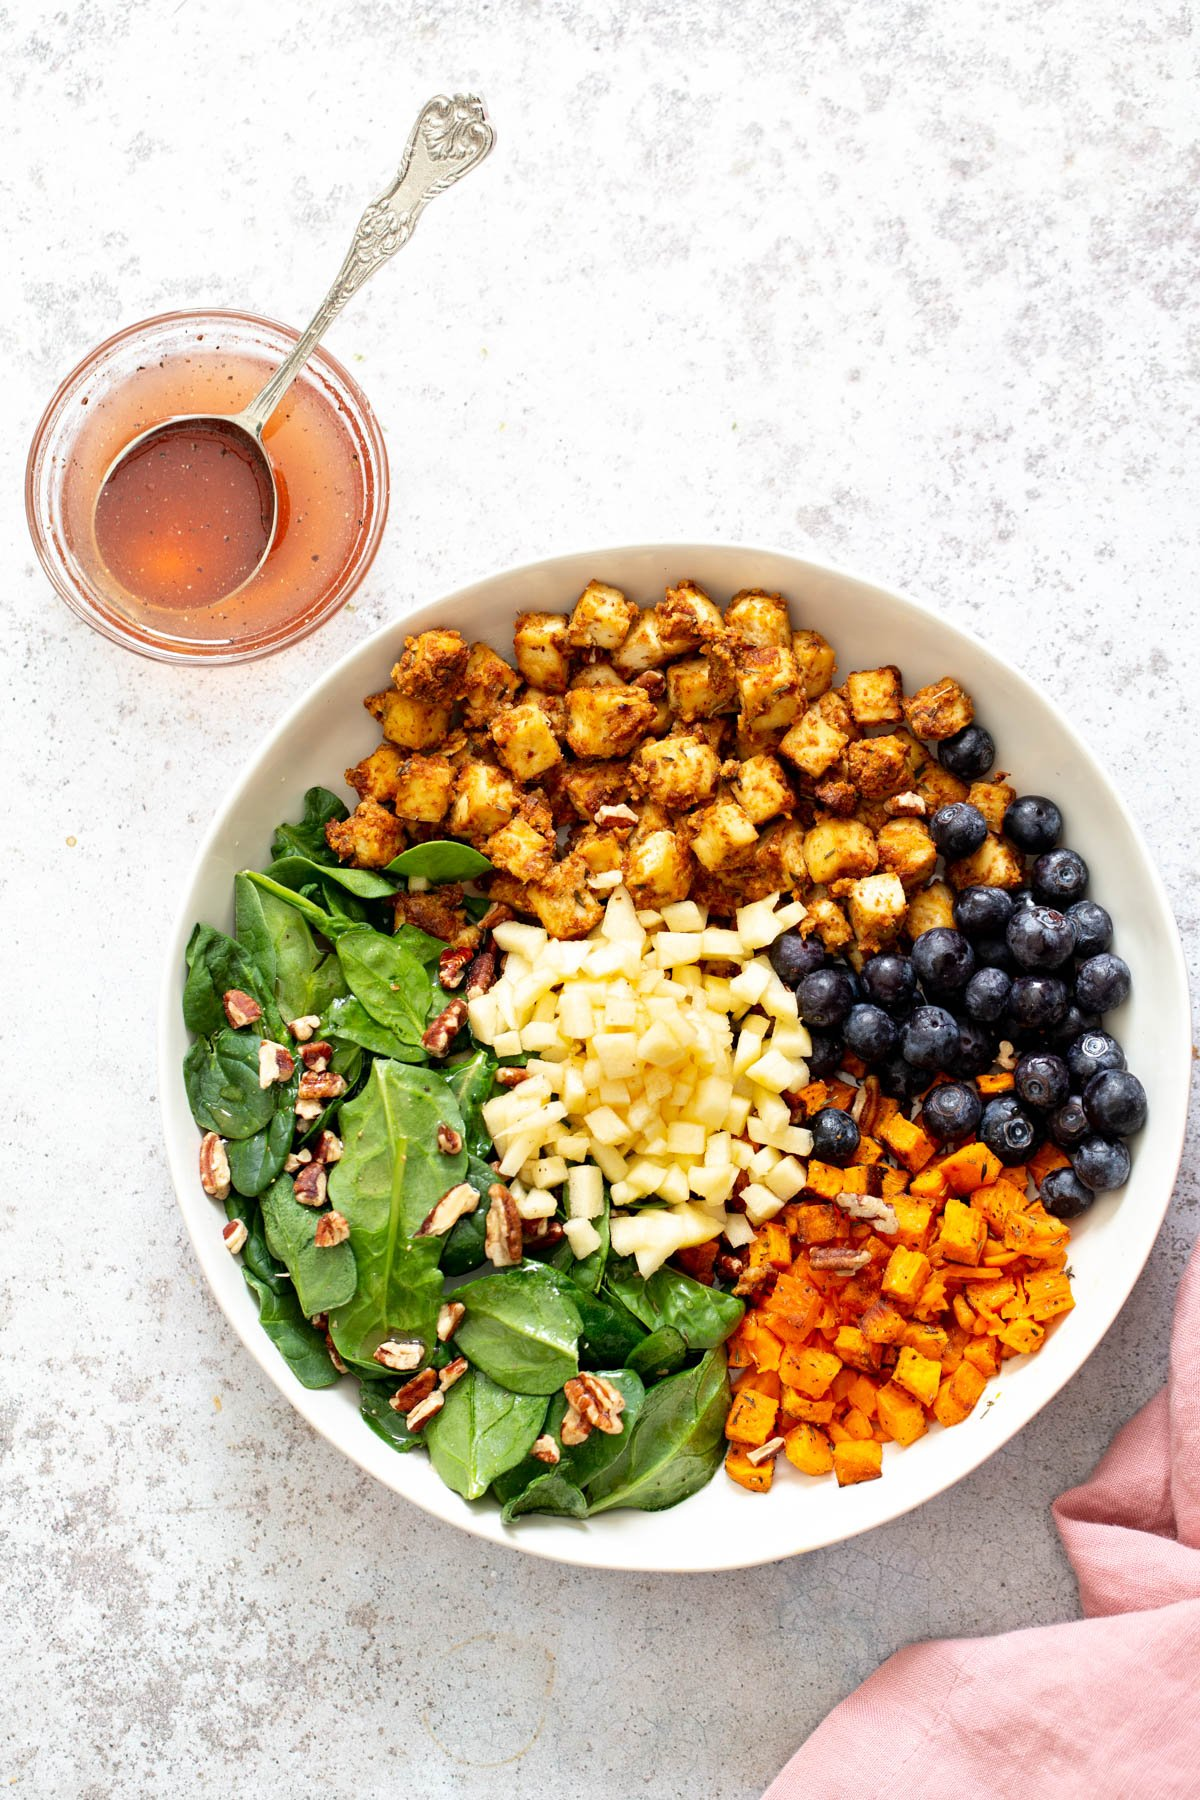 all ingredients for sweet potato tofu bowls assembled in a shallow white bowl with a side dish with dressing